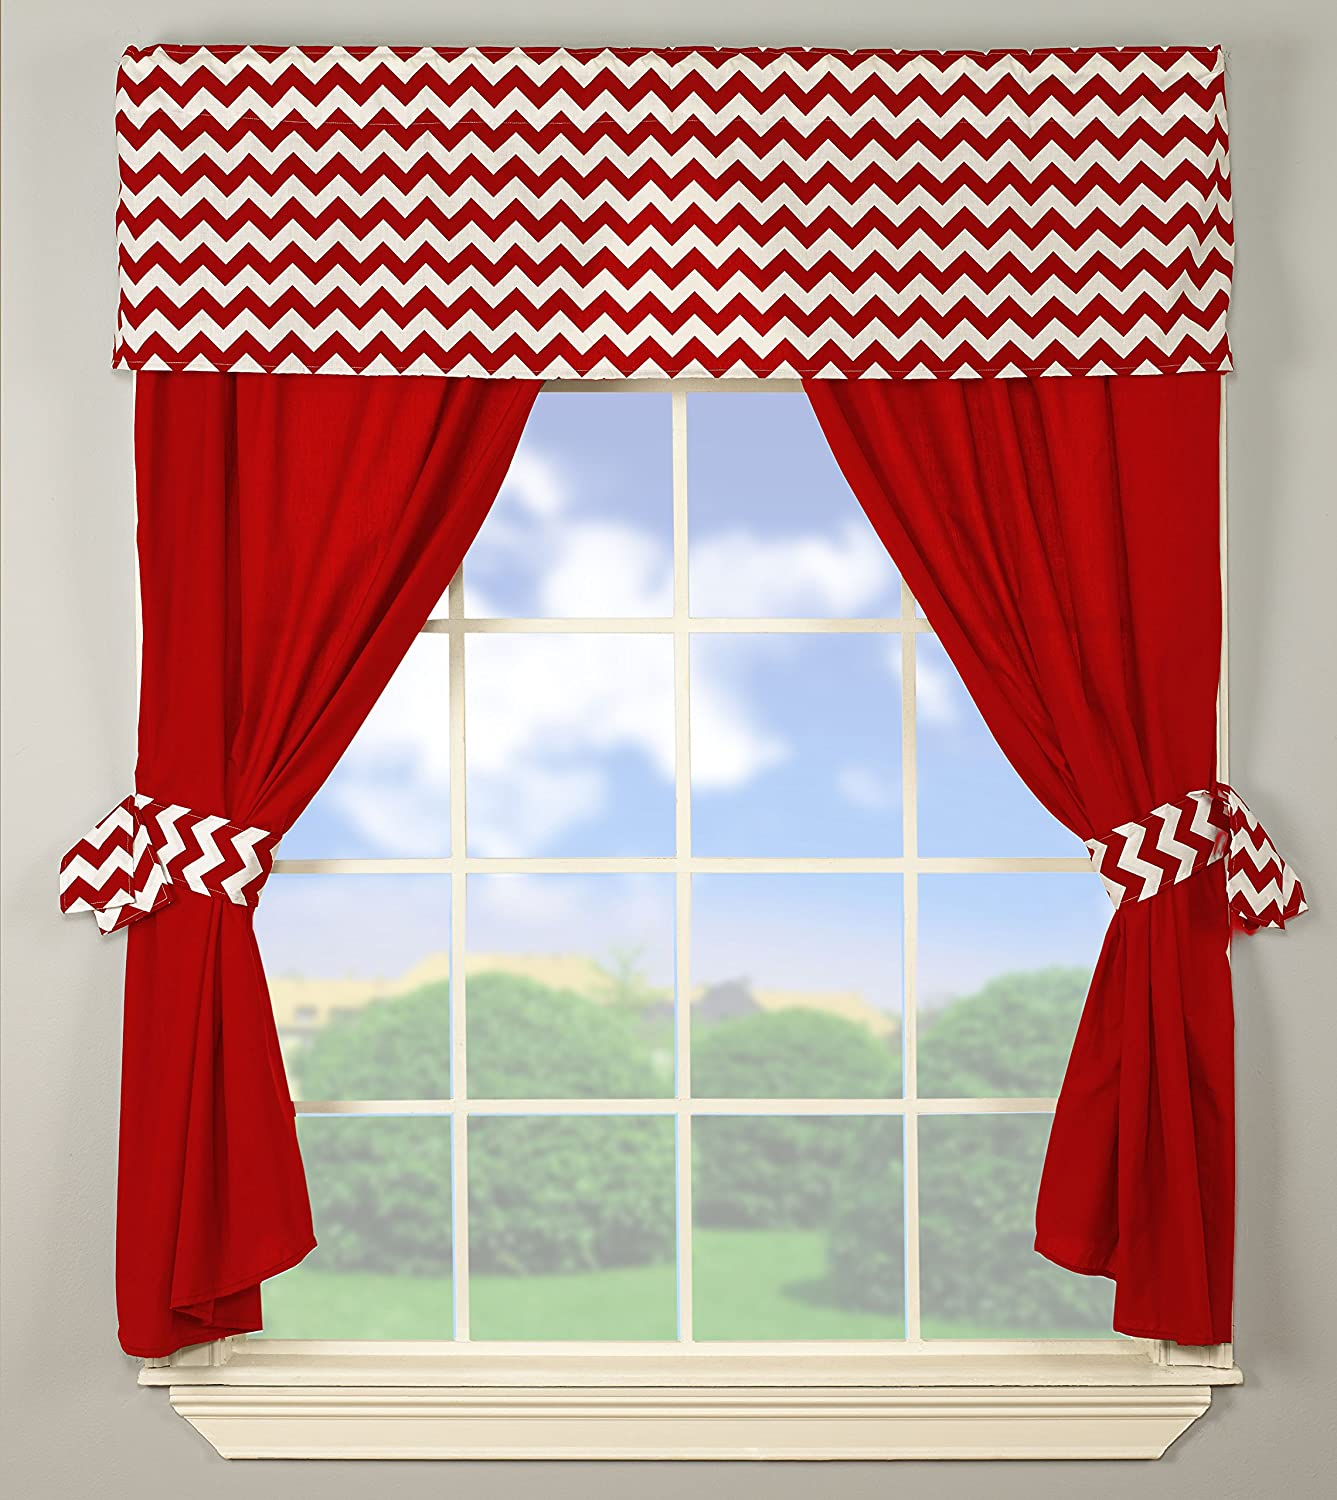 Baby Doll Bedding Chevron Window Valance and Curtain Set, Red 705valc5